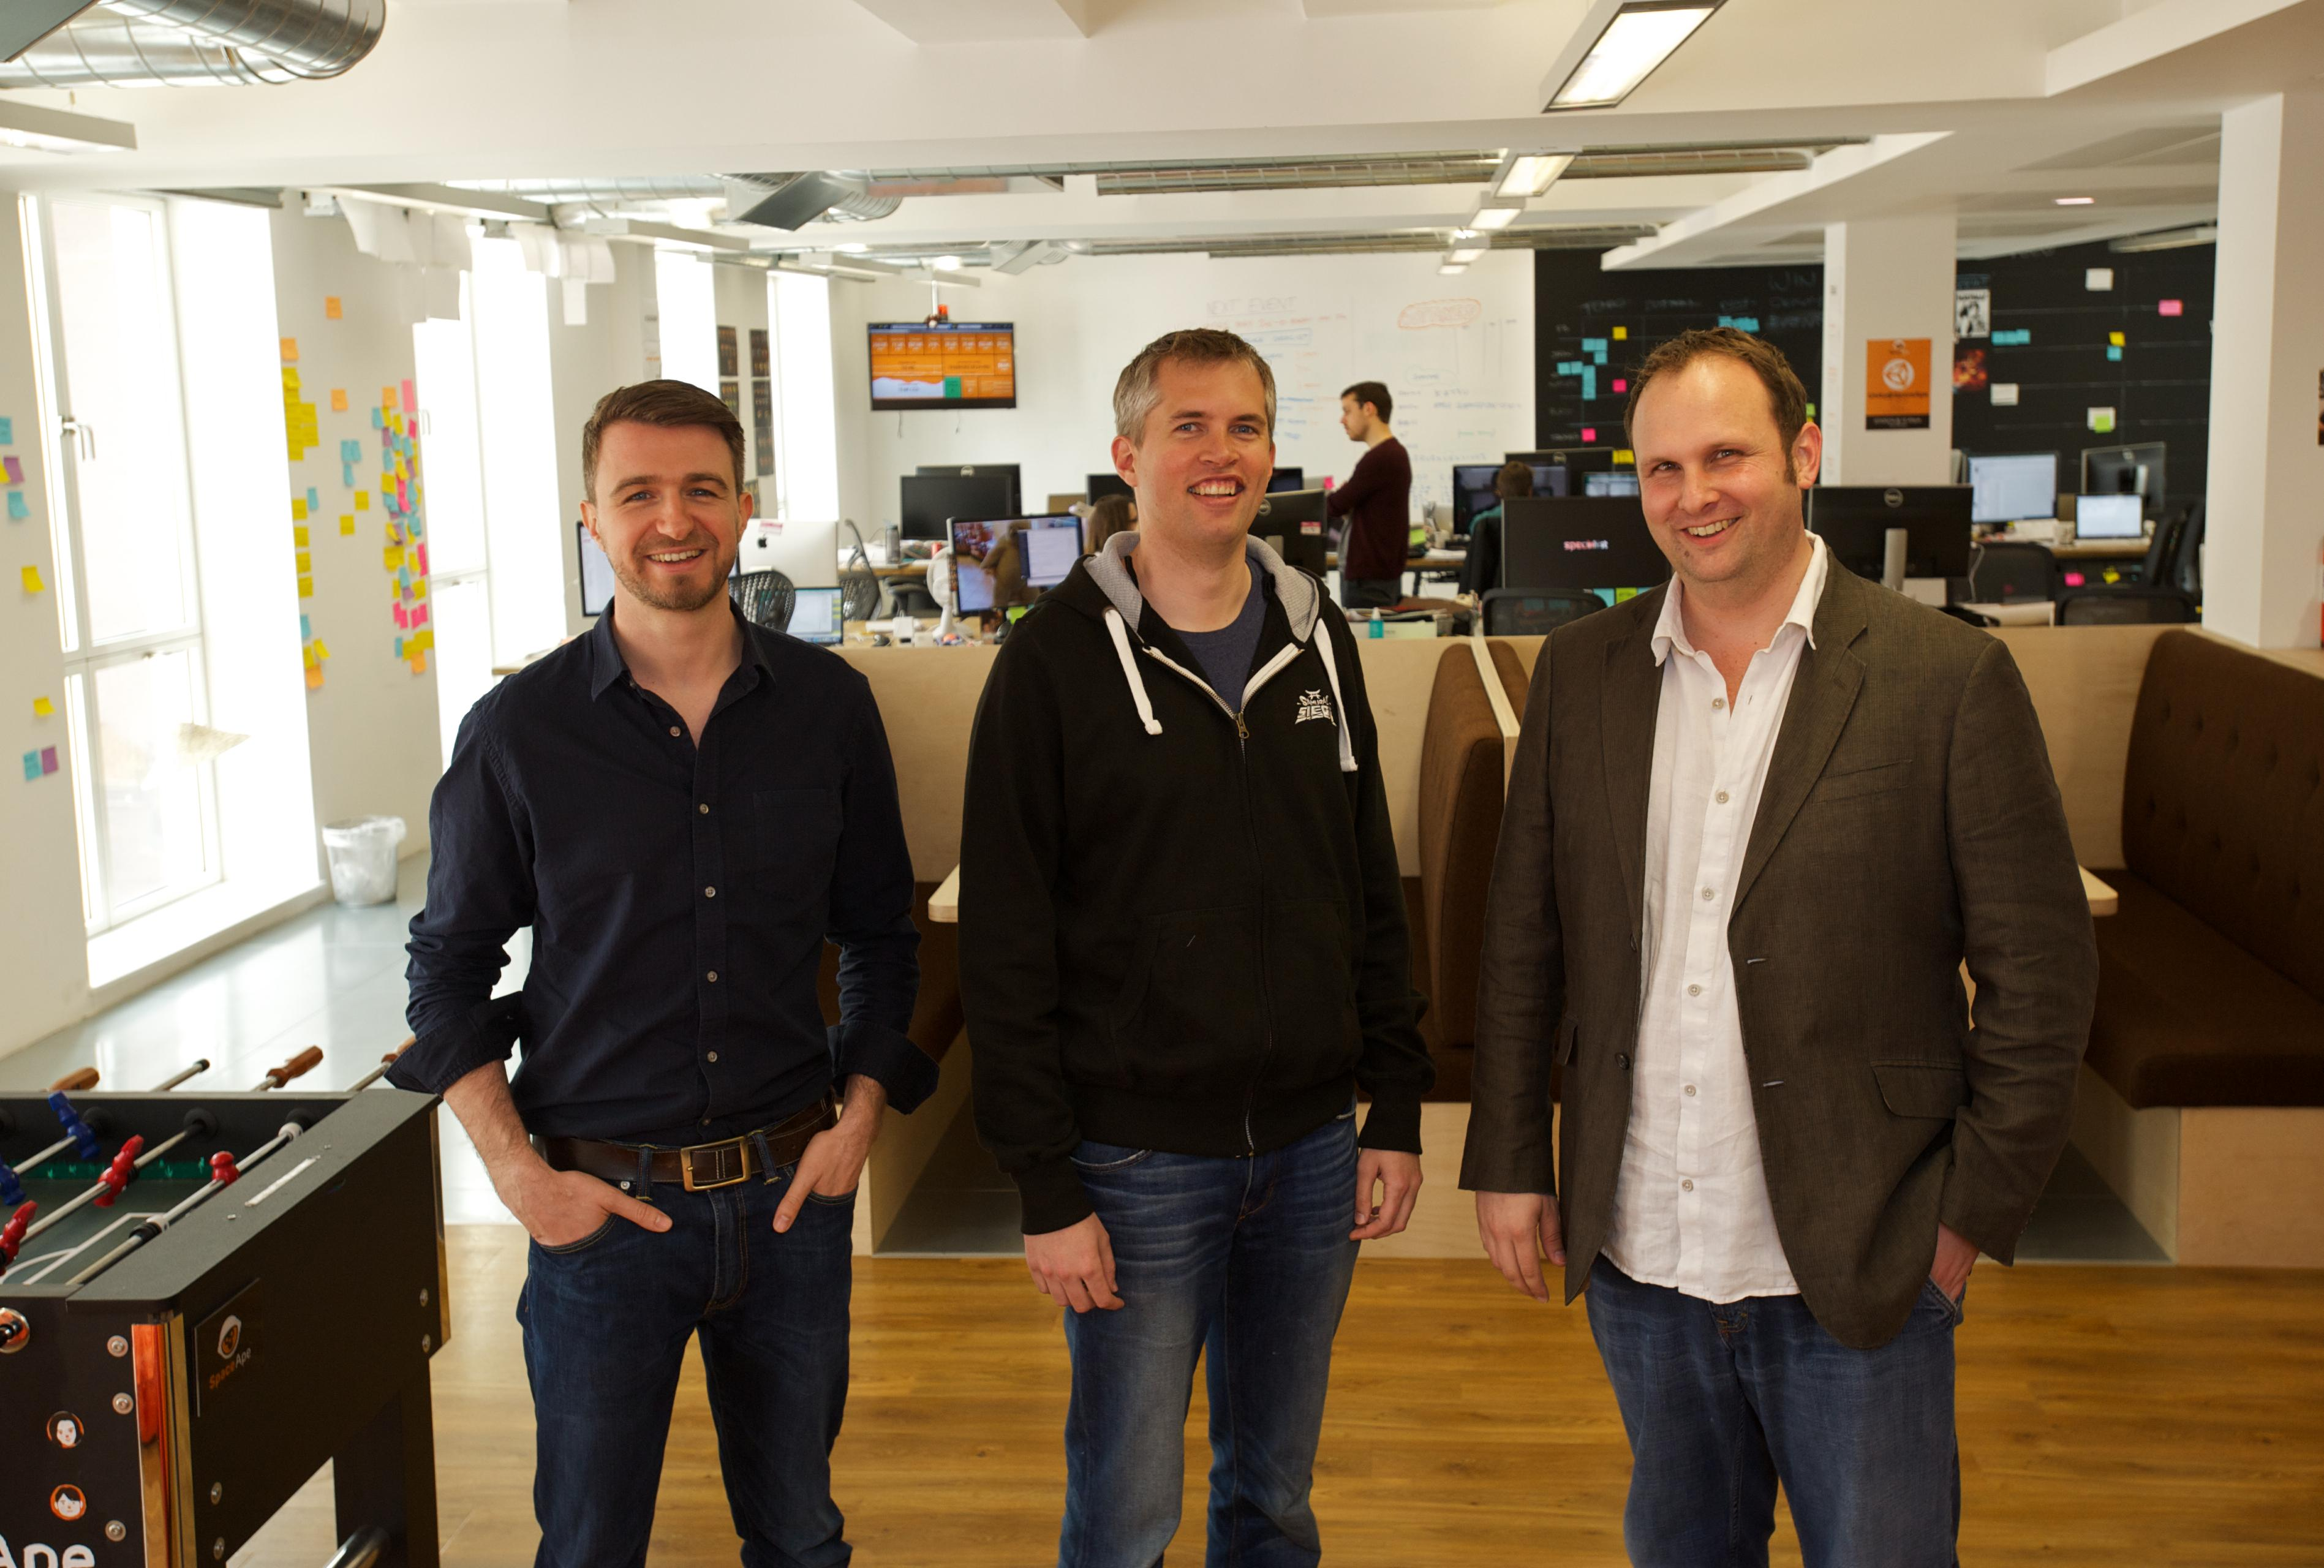 space ape supercell acquires shares 62% game studio rivals clash royale clash of clans